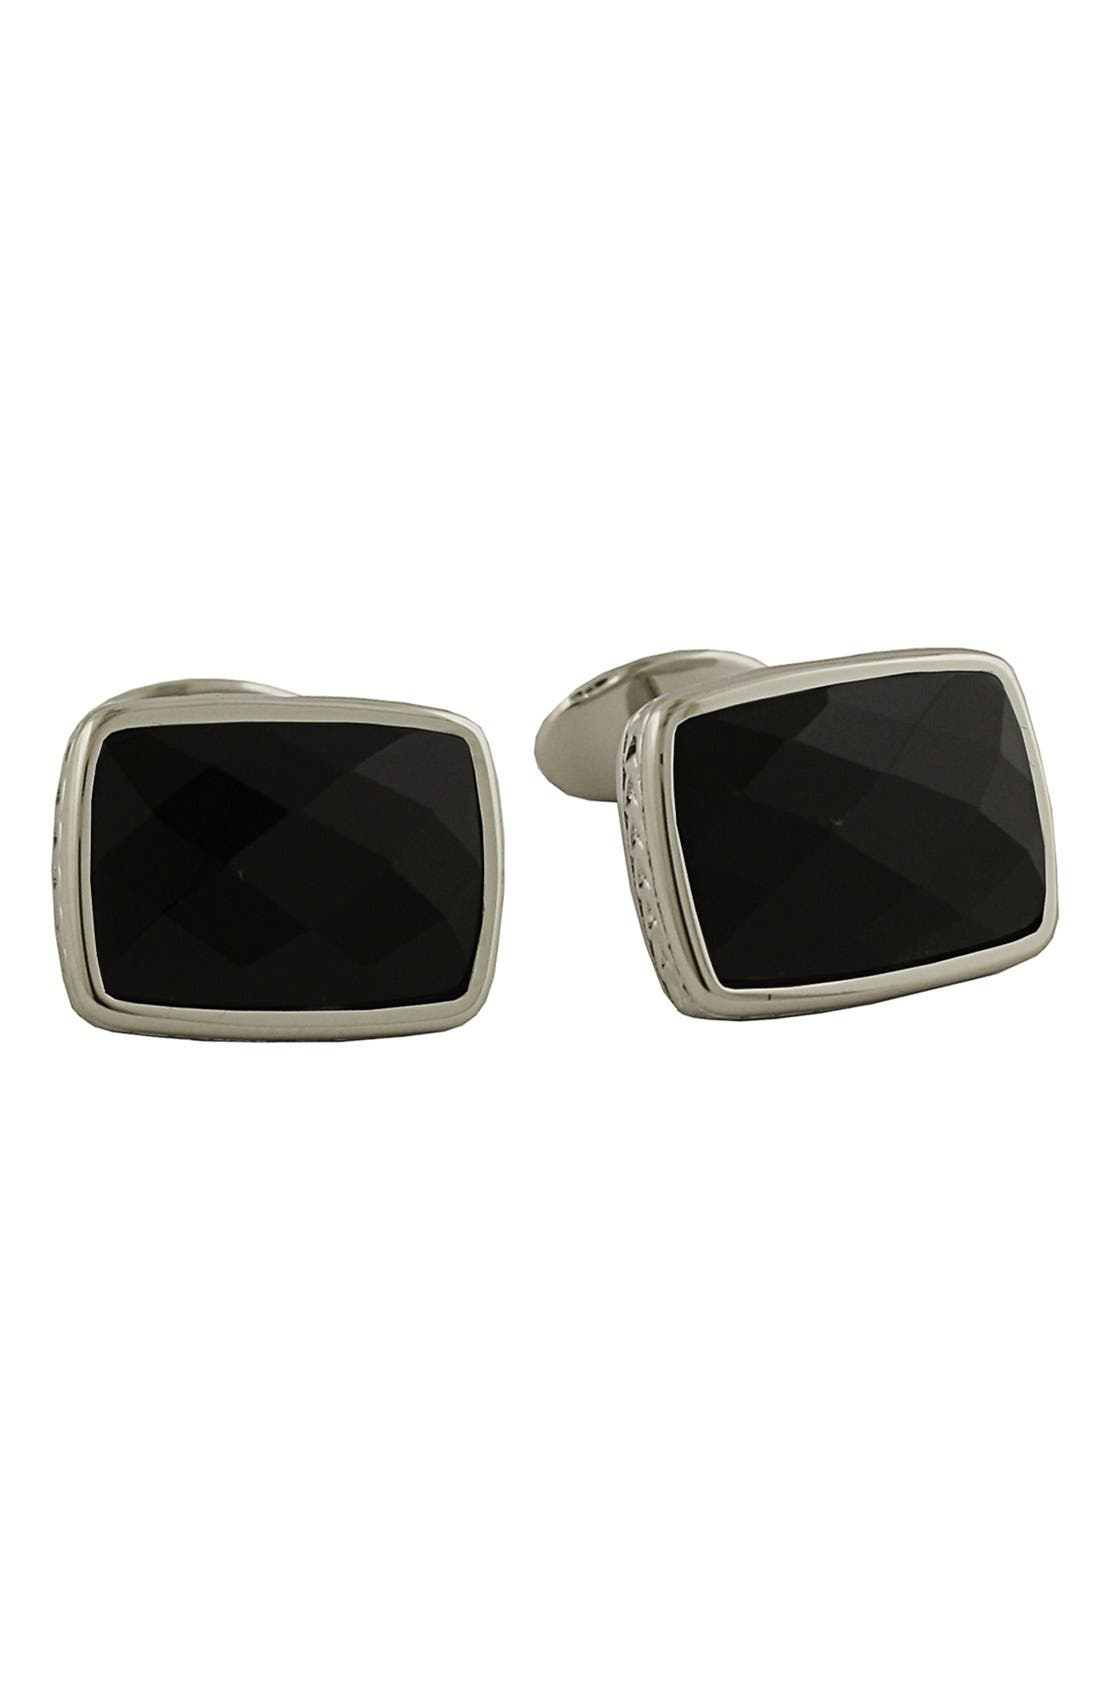 Sterling Silver Cuff Links,                             Main thumbnail 1, color,                             ONYX